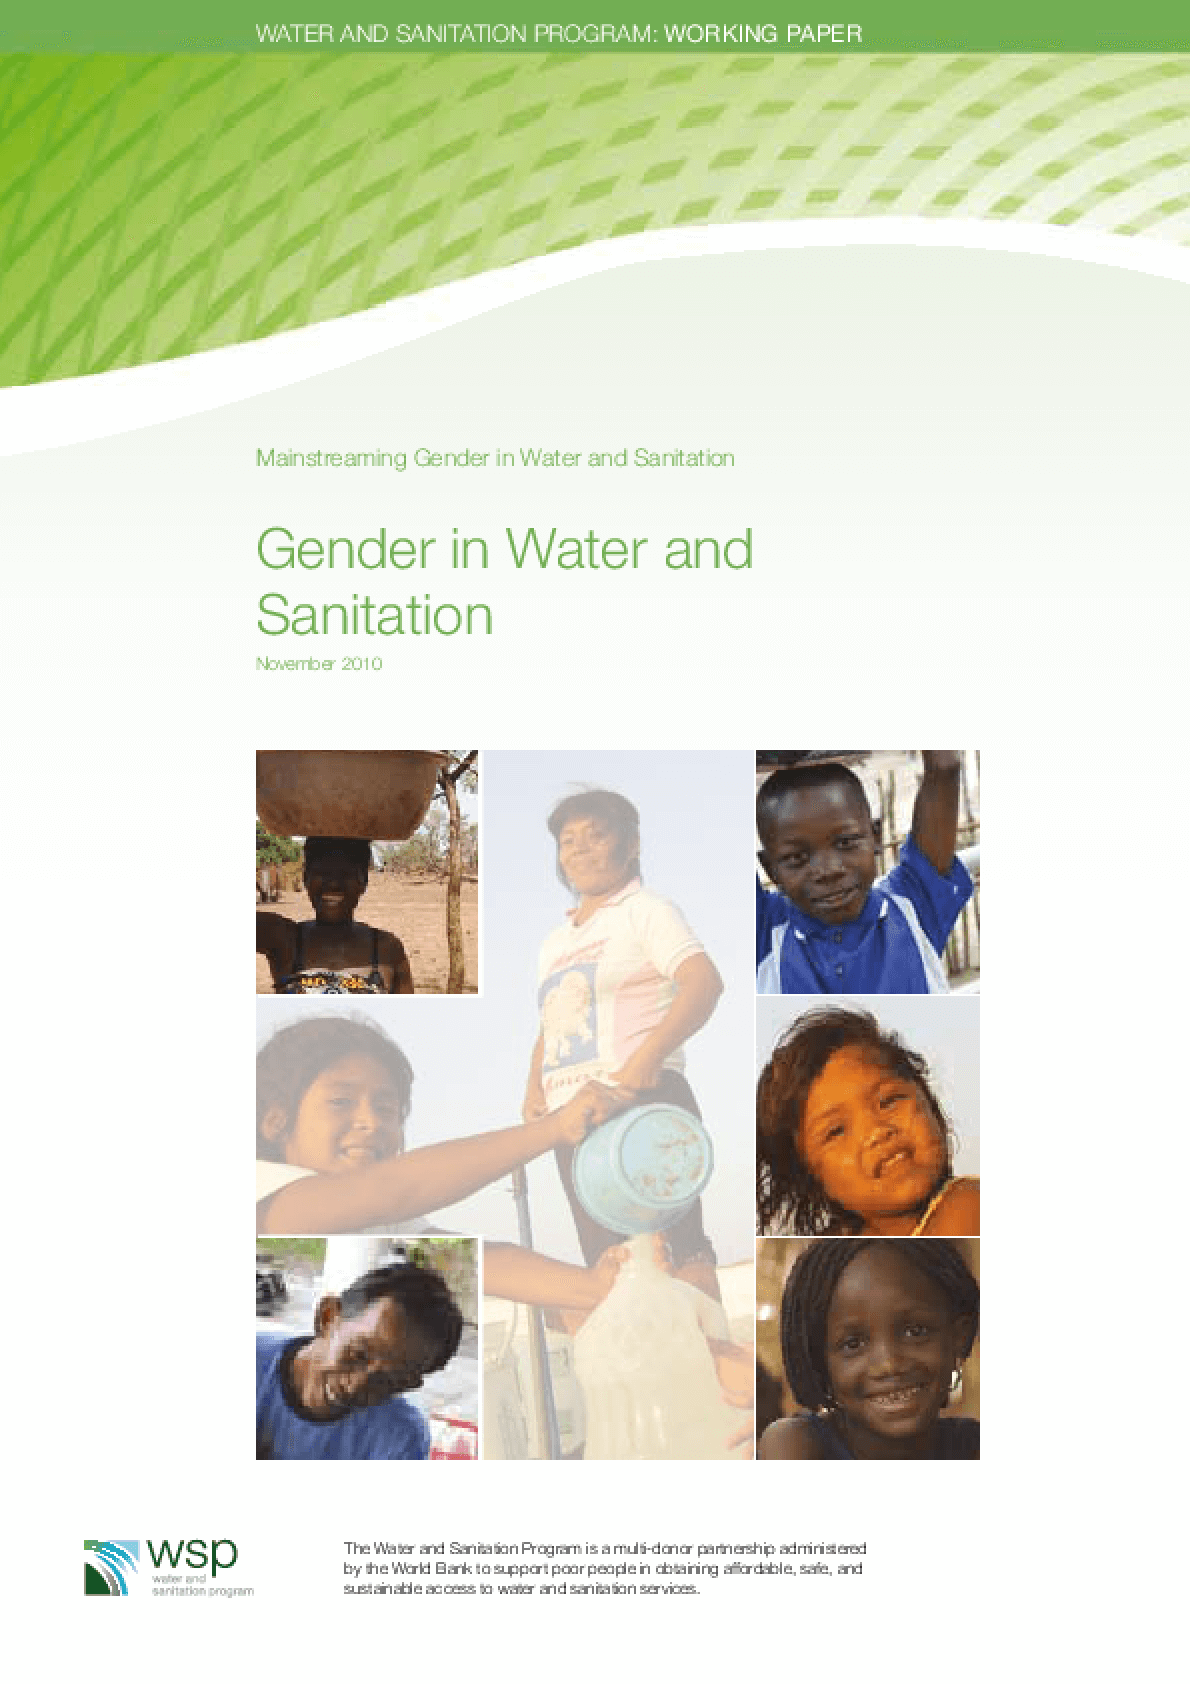 Gender in Water and Sanitation